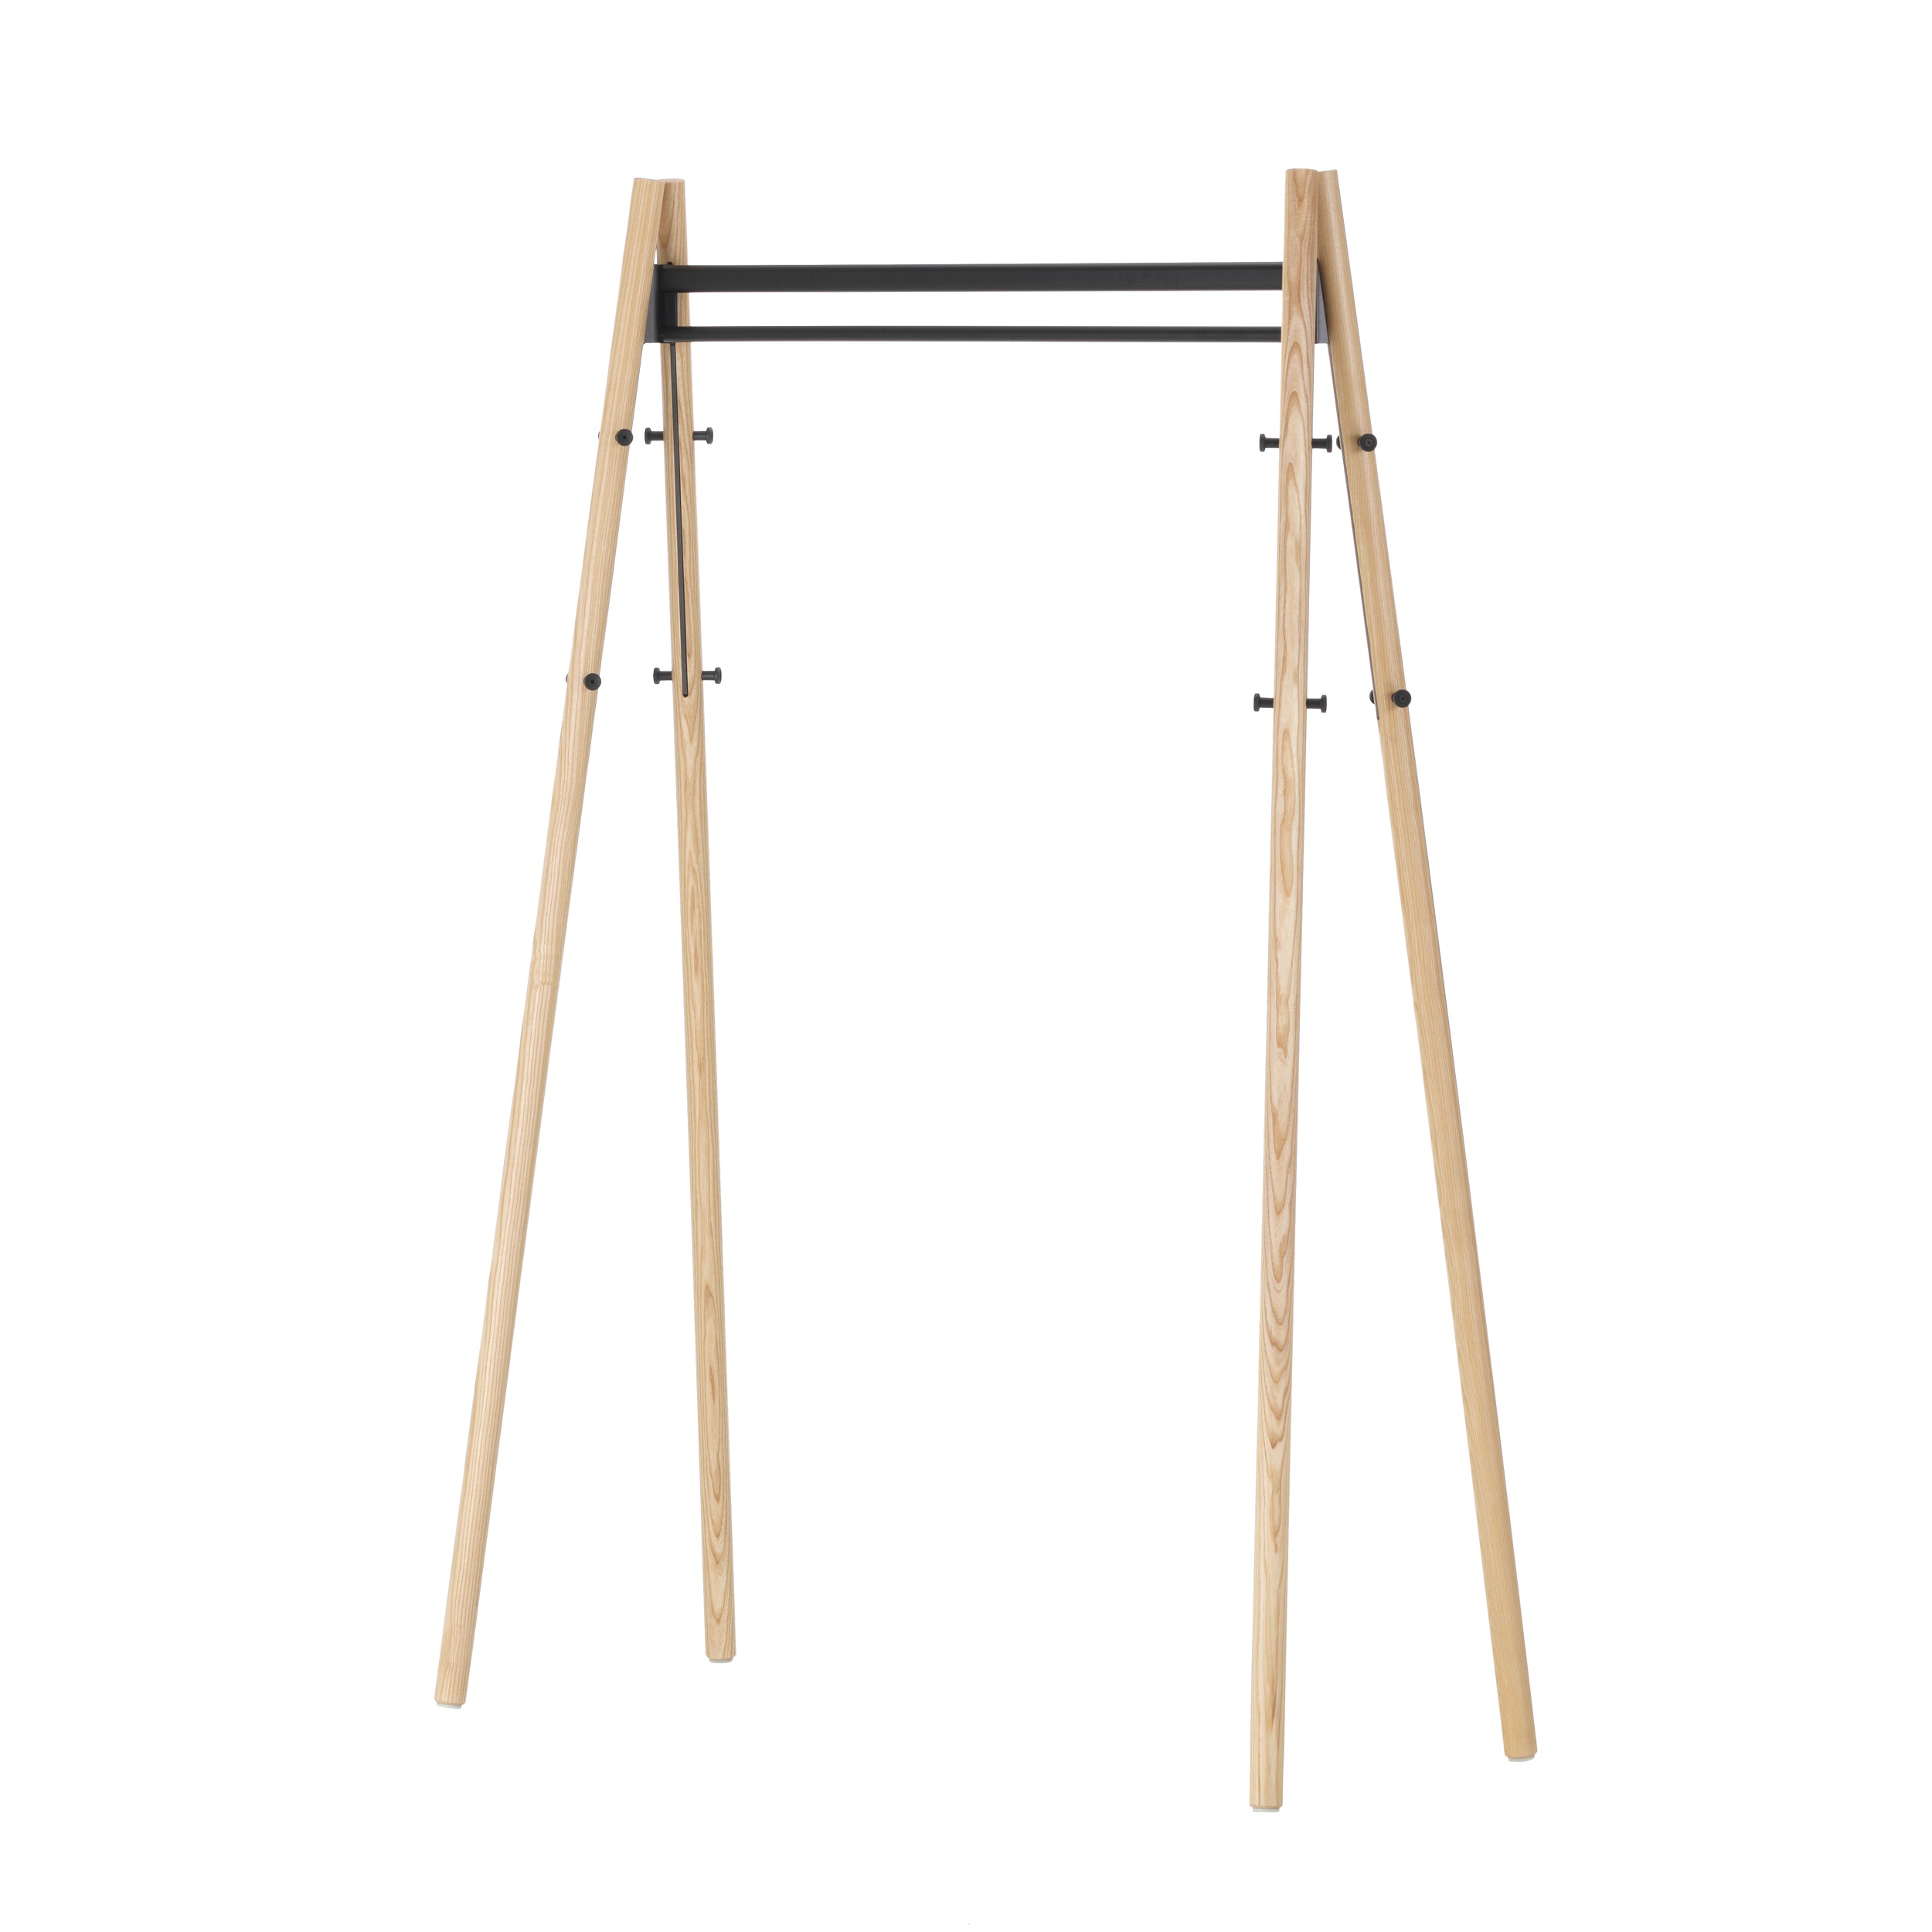 Artek Kiila Coat Rack by Alvar Aalto Natural Lacquered Hooks Black